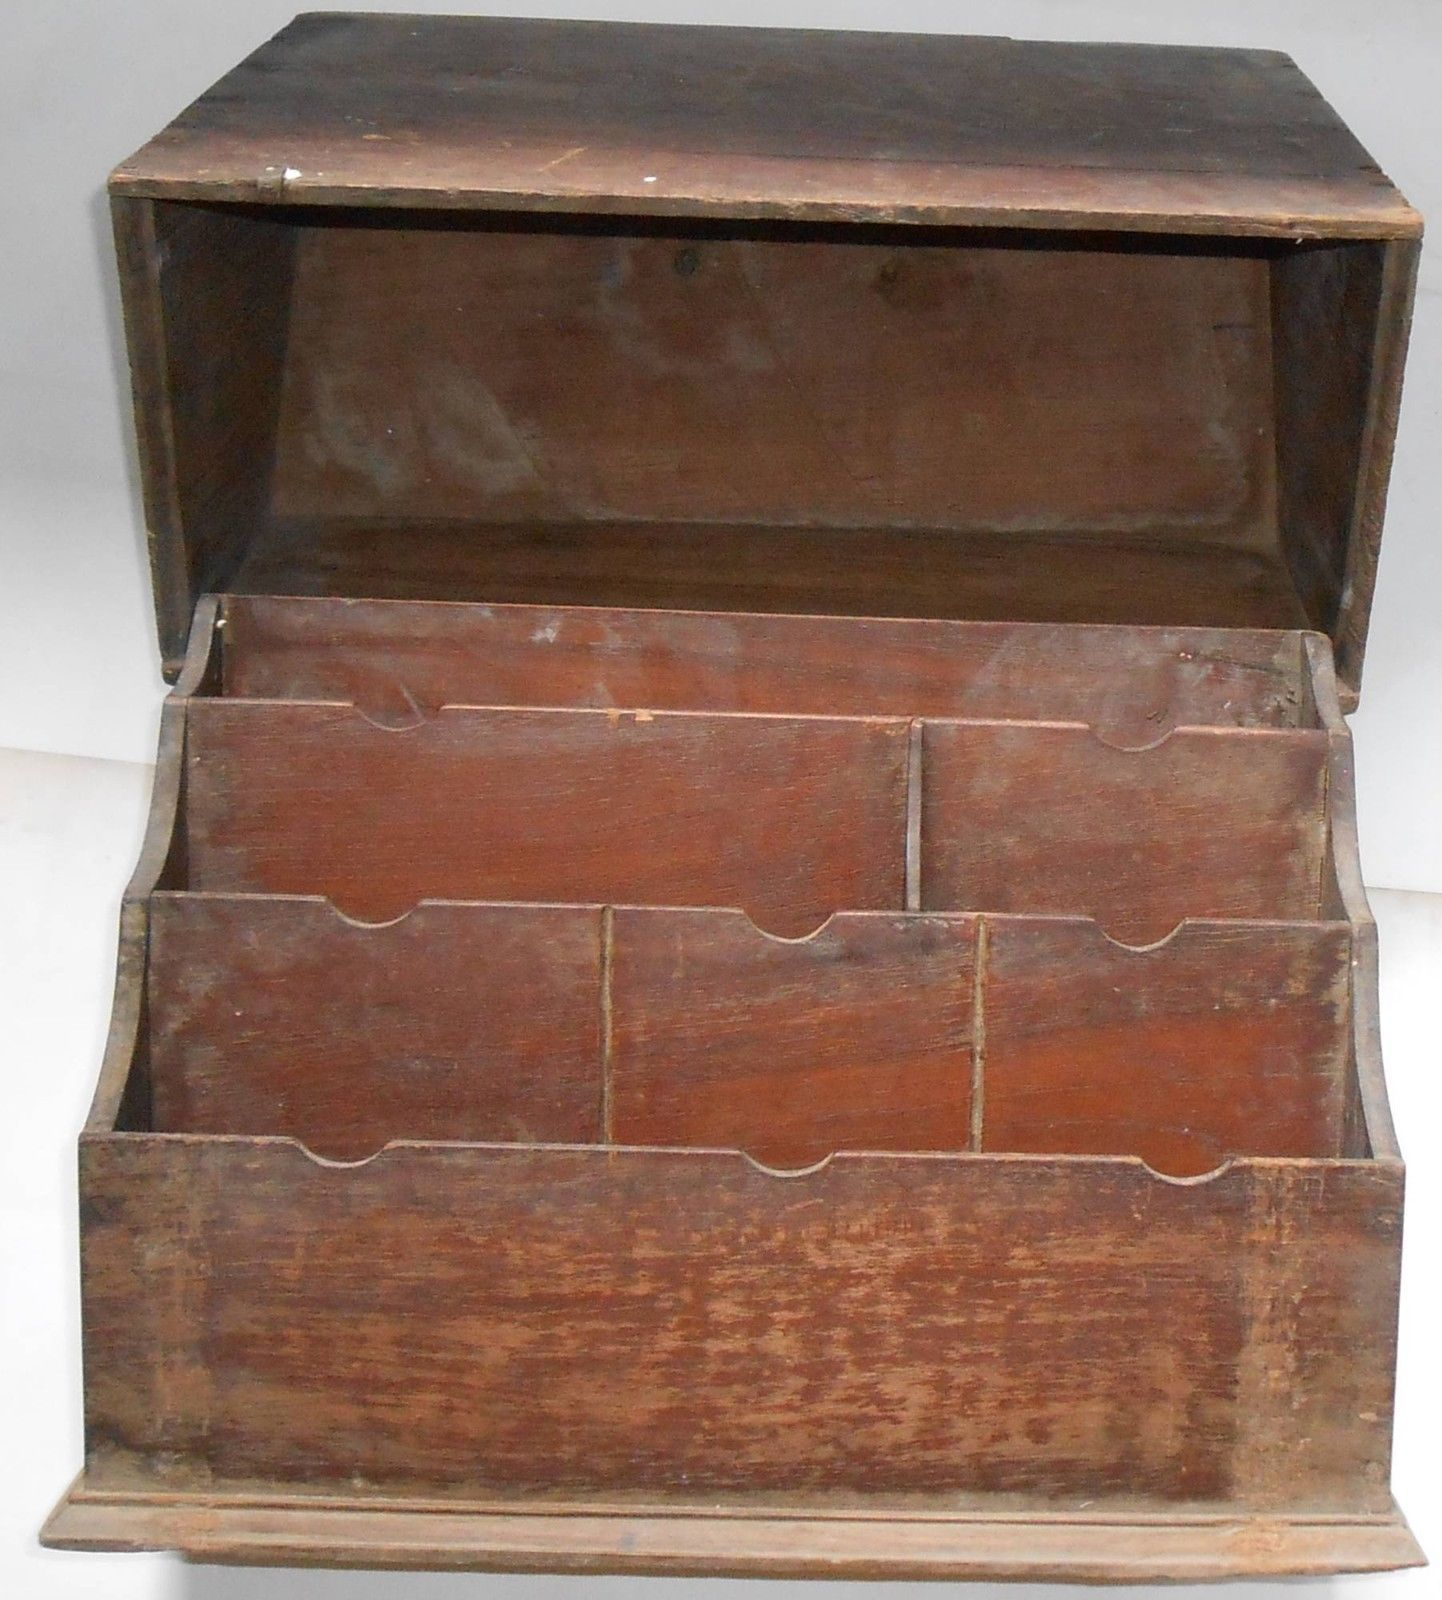 Decorative Stationery Boxes Indian Vintage Wooden Stationery Holder Box With Cover Very